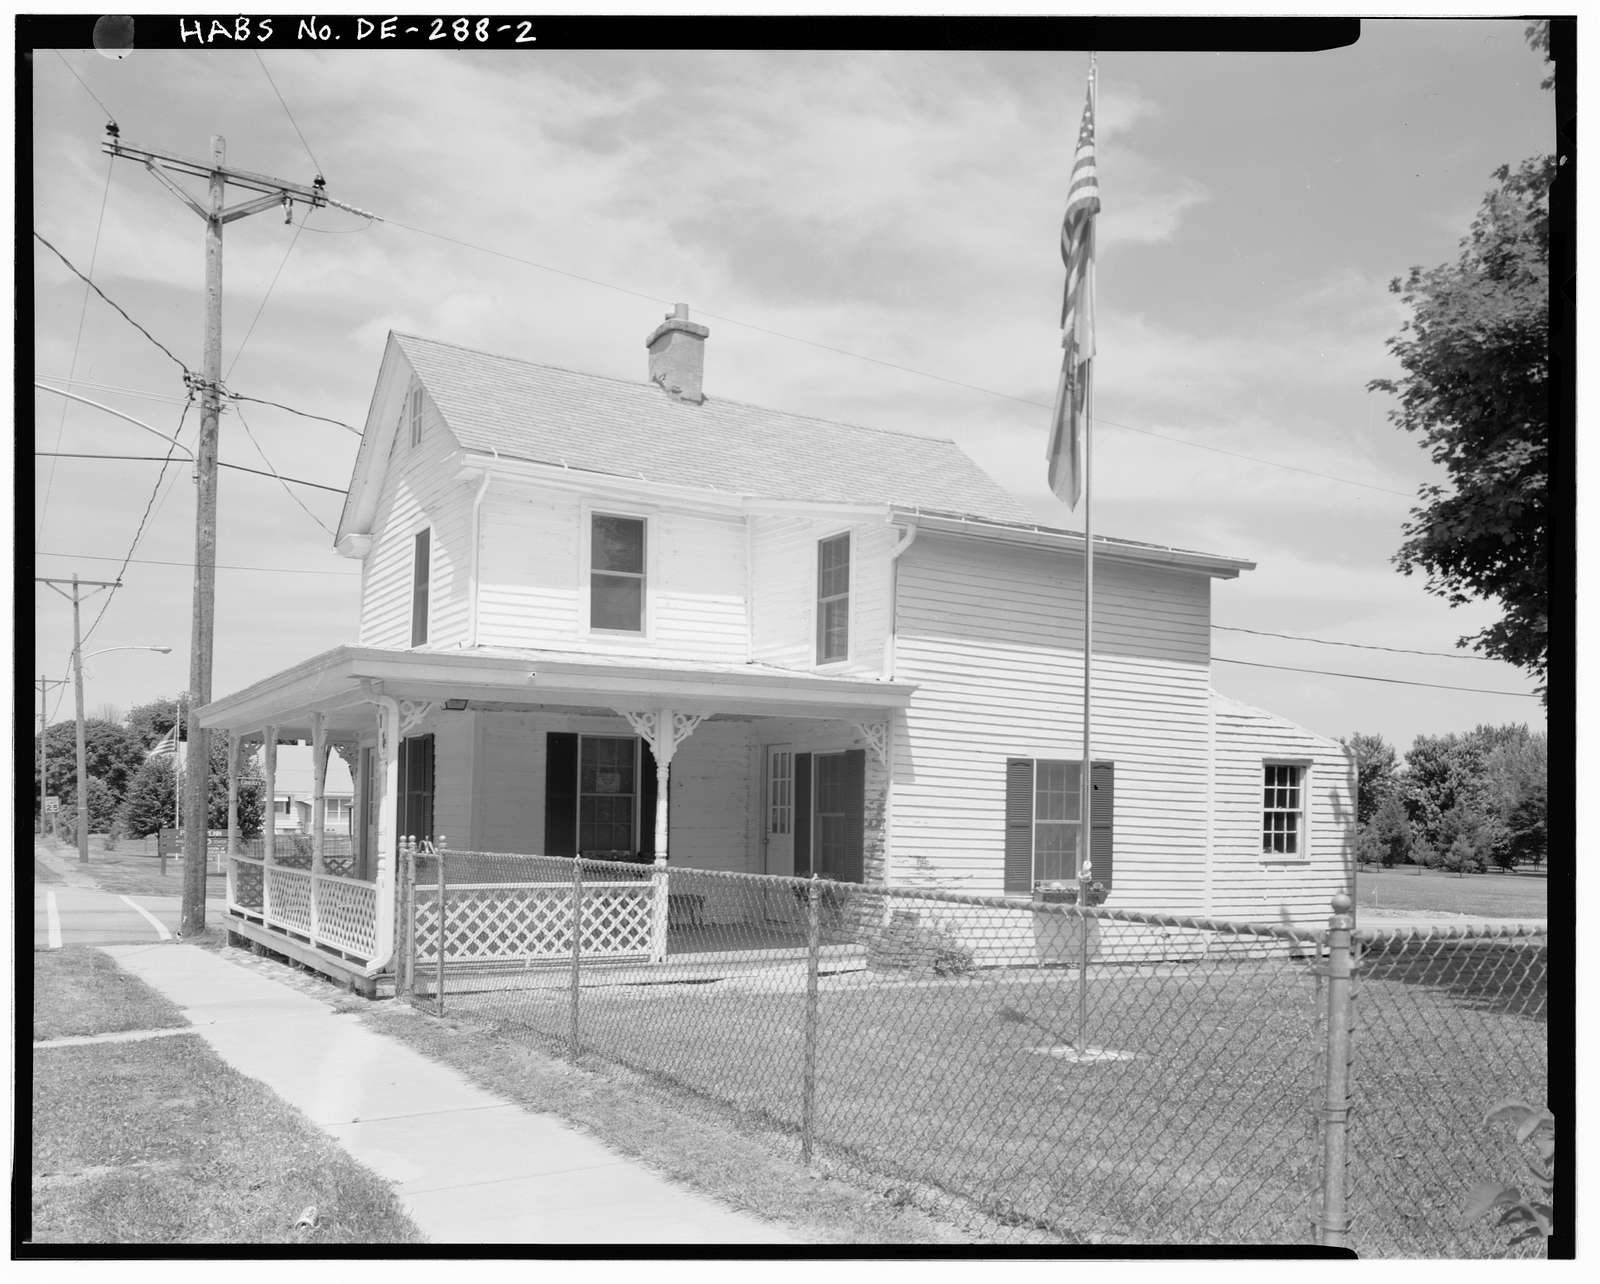 Canary-Naudine Store, Corner of Route 72 & Route 9, Port Penn, New Castle County, DE